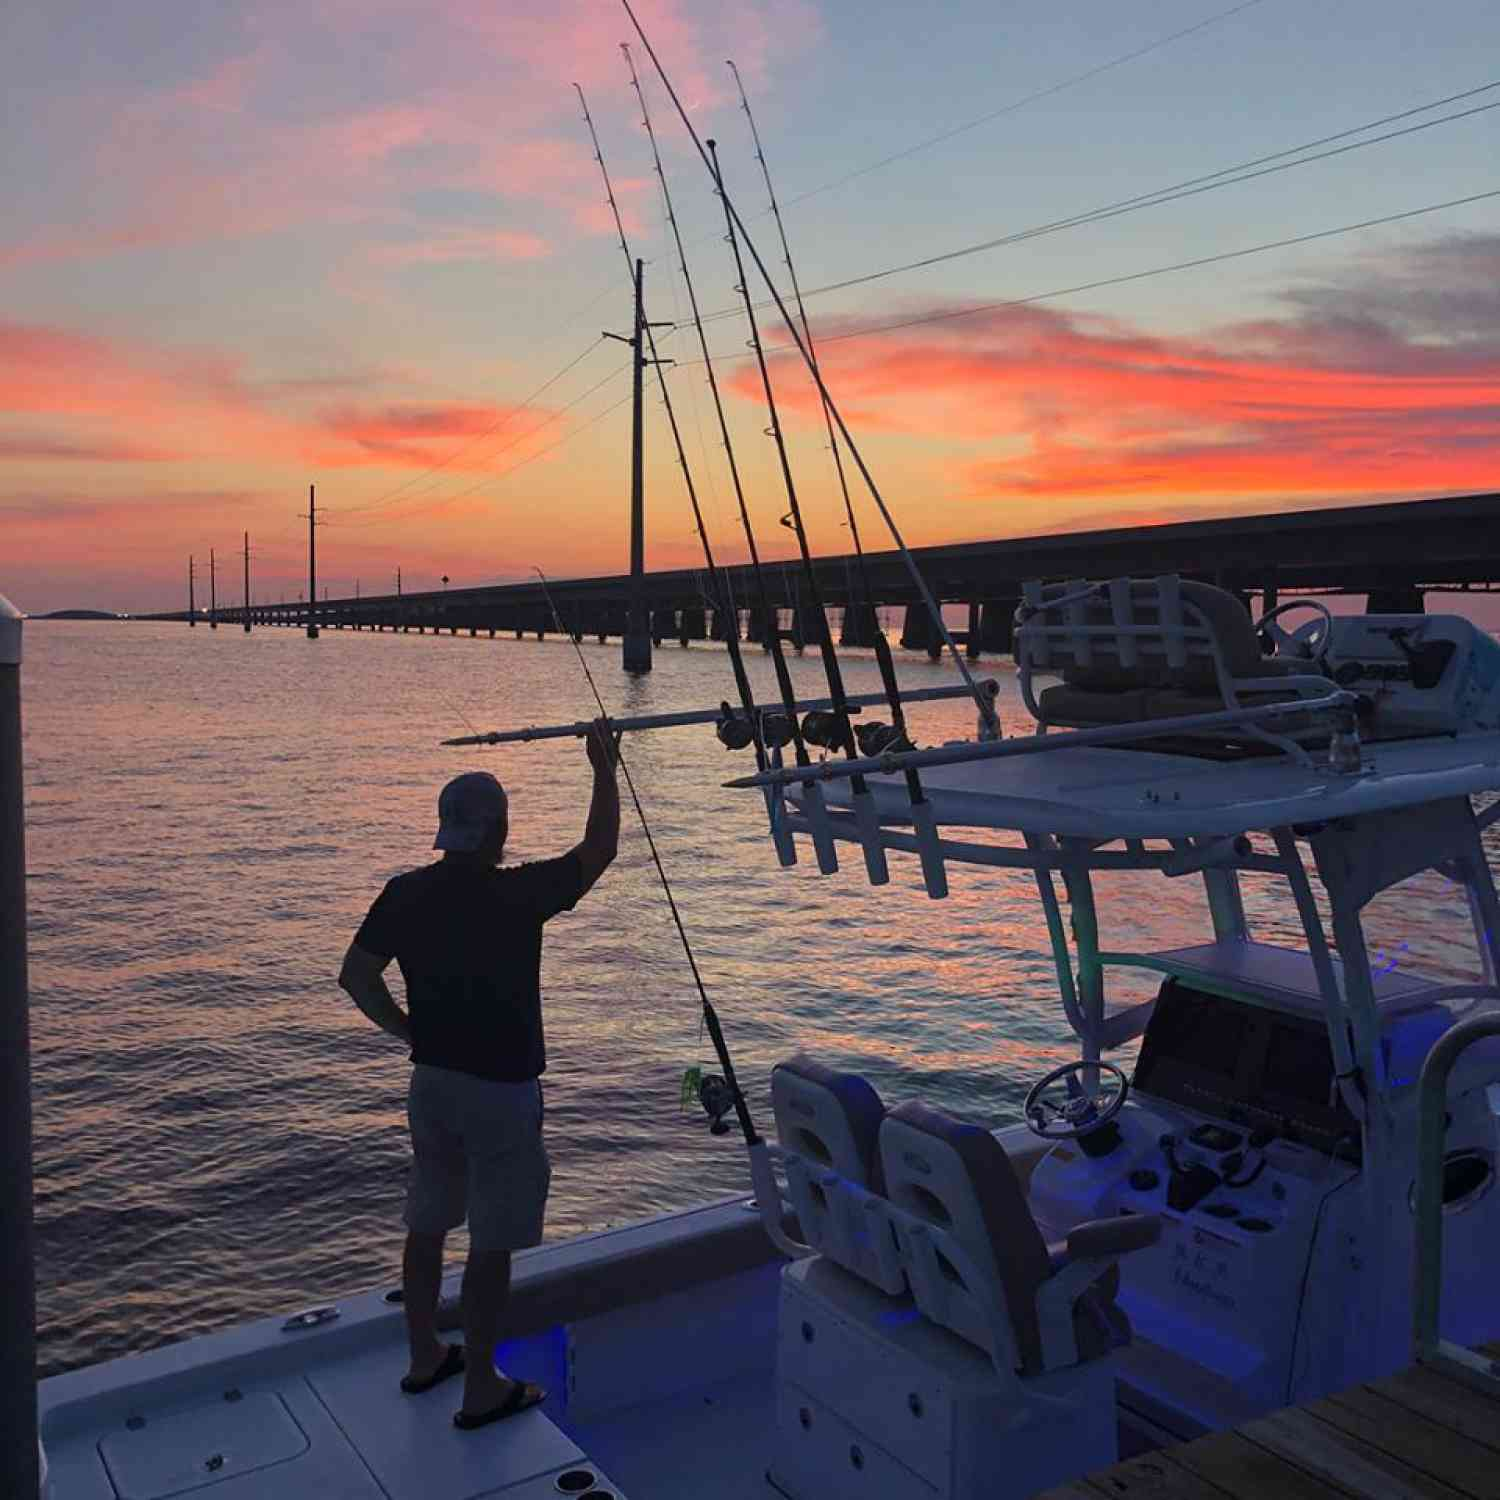 Title: Captain Mark & the Seven Mile Bridge sunset - On board their Sportsman Masters 267 Bay Boat - Location: Marathon, FL. Participating in the Photo Contest #SportsmanAugust2018